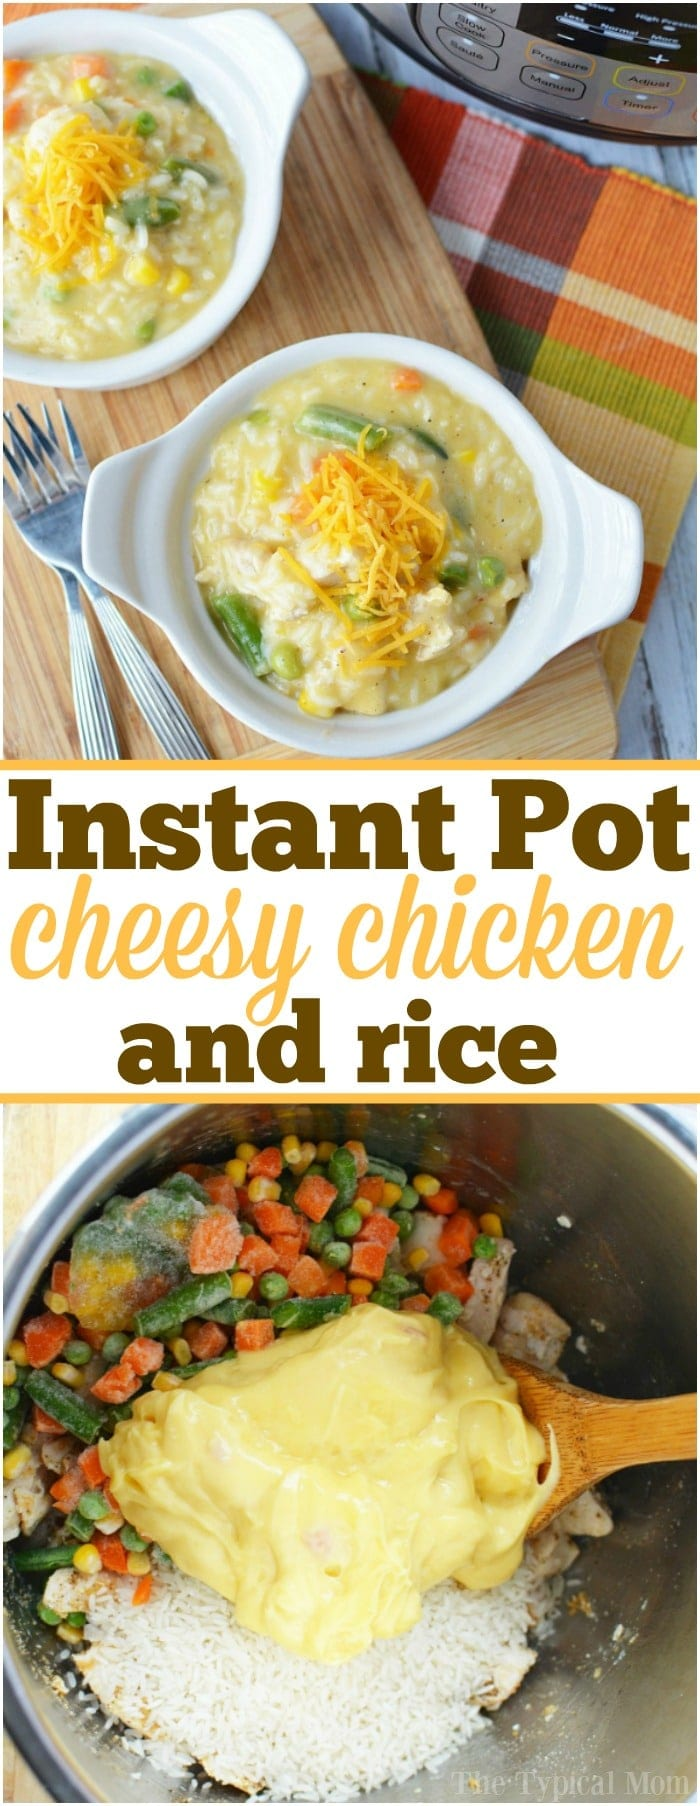 Amazingly easy pressure cooker chicken and rice casserole recipe we make in our Instant Pot the other night for dinner. Just 19 minutes cooks chicken, rice and vegetables perfectly. My kids absolutely love this meal and it's simple for me to throw it all together. A great way to get them to eat vegetables too! #pressurecooker #chicken #vegetables #rice #easy #instantpot #casserole